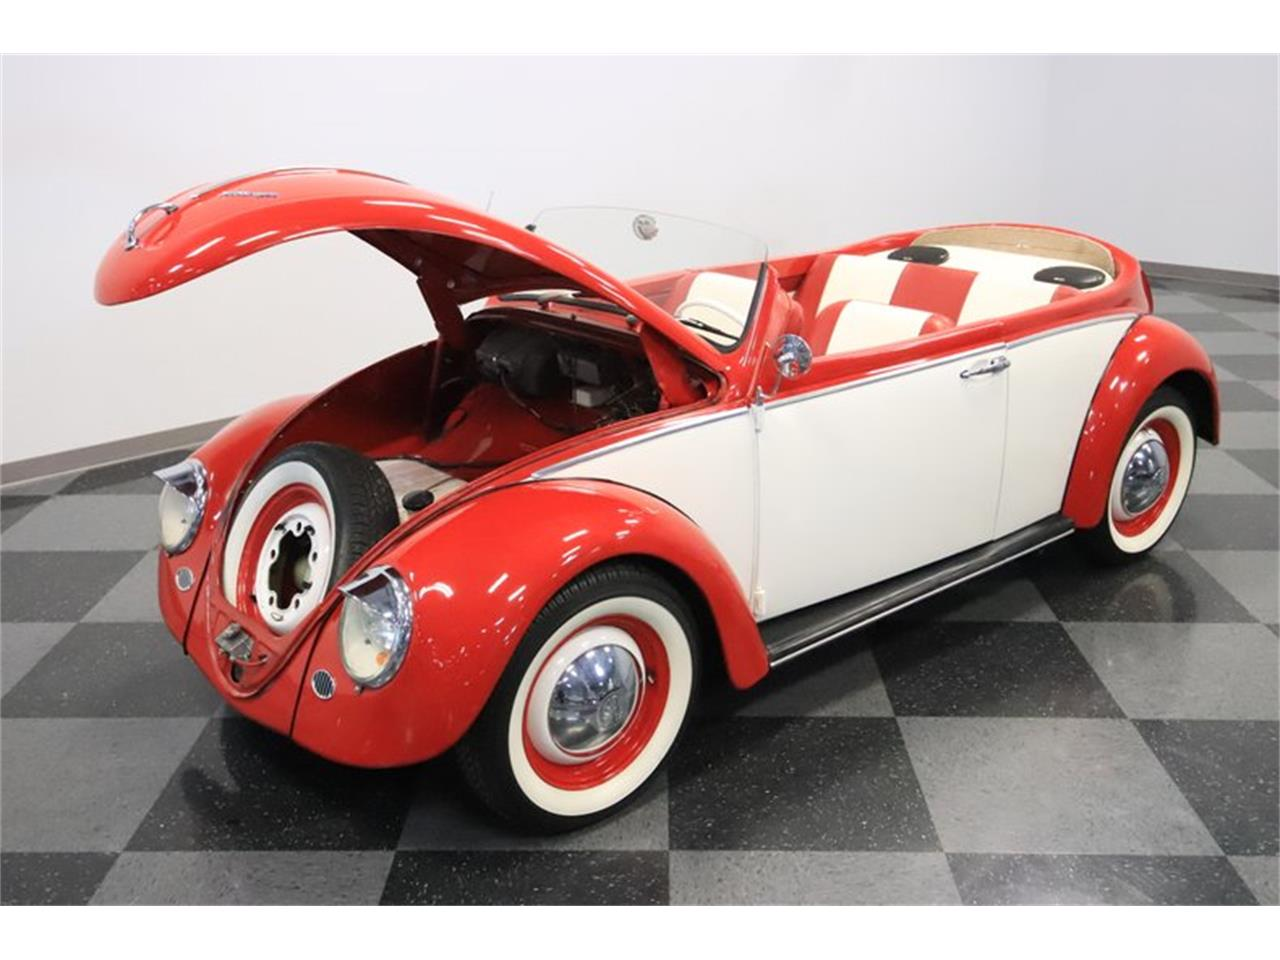 Large Picture of Classic 1965 Volkswagen Beetle located in Arizona - $13,995.00 Offered by Streetside Classics - Phoenix - Q2L7